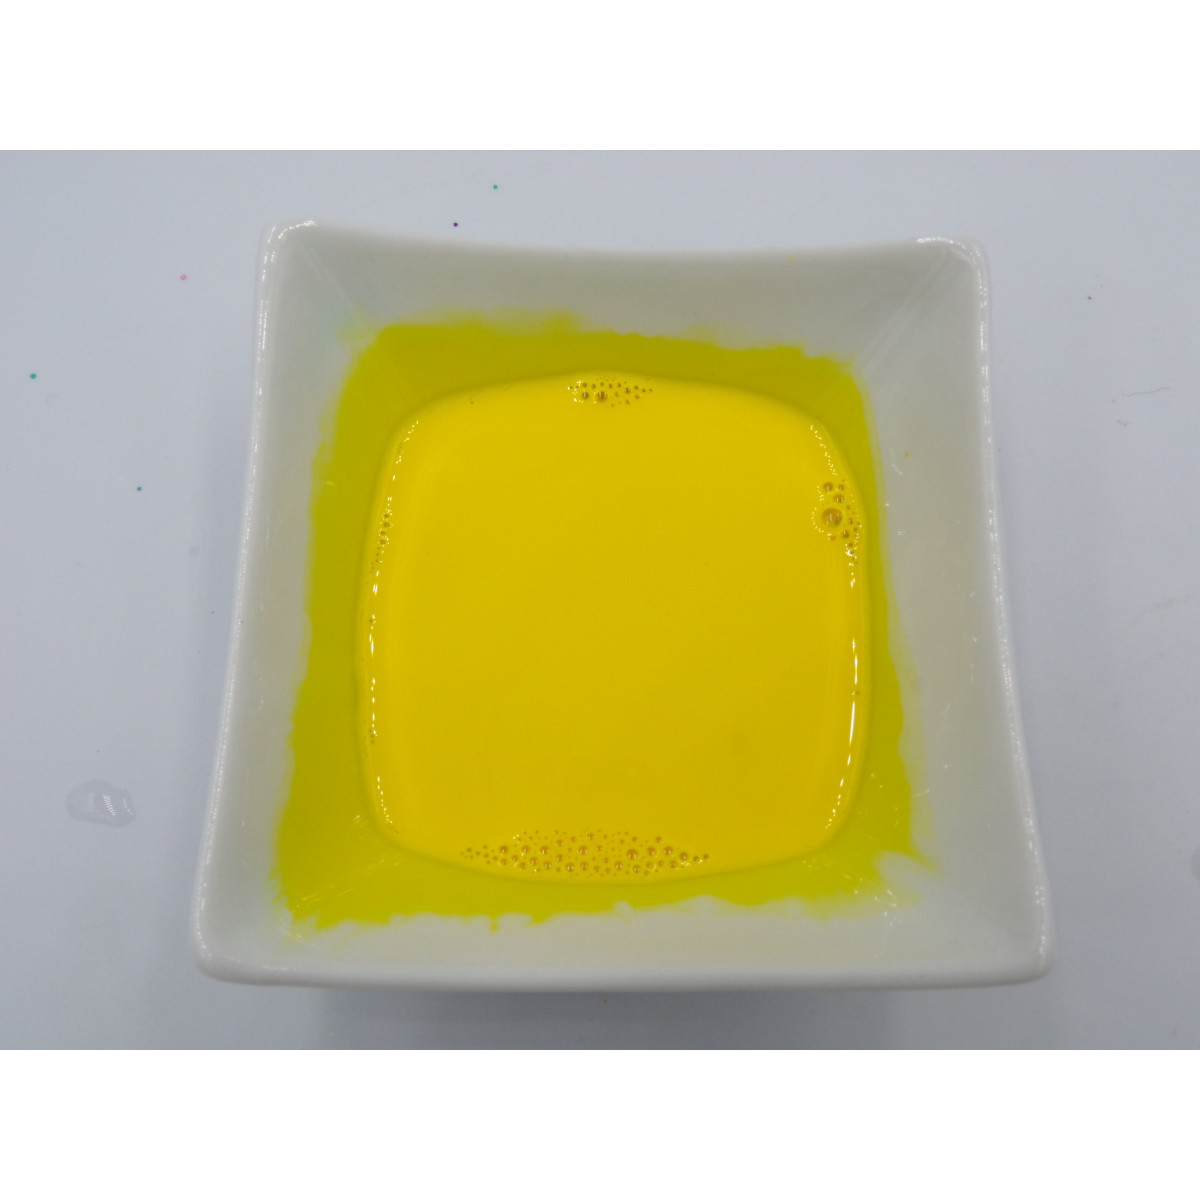 Colorant liquide opaque Jaune d'or